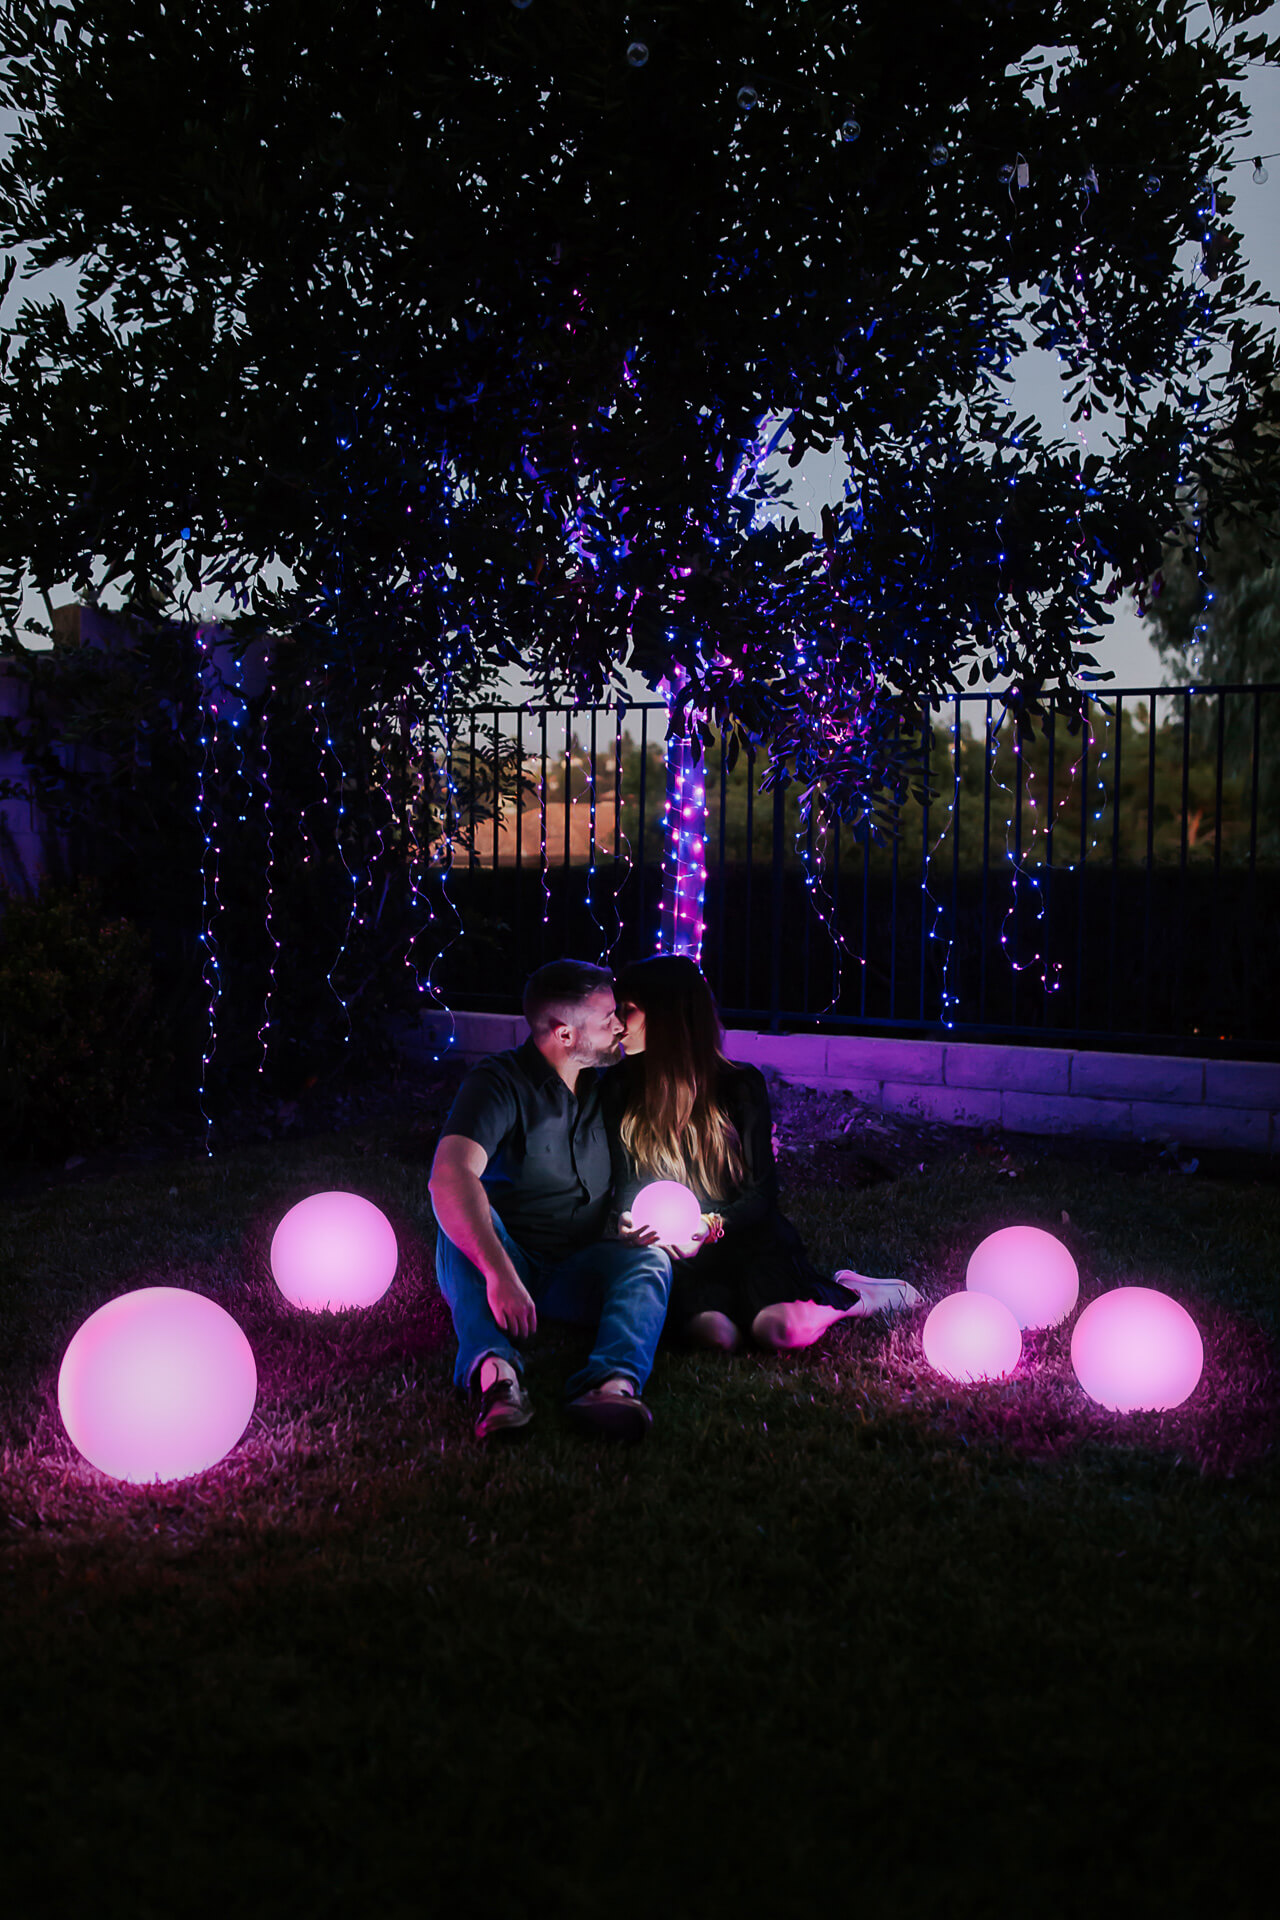 a unique nighttime gender reveal - M Loves M @marmar